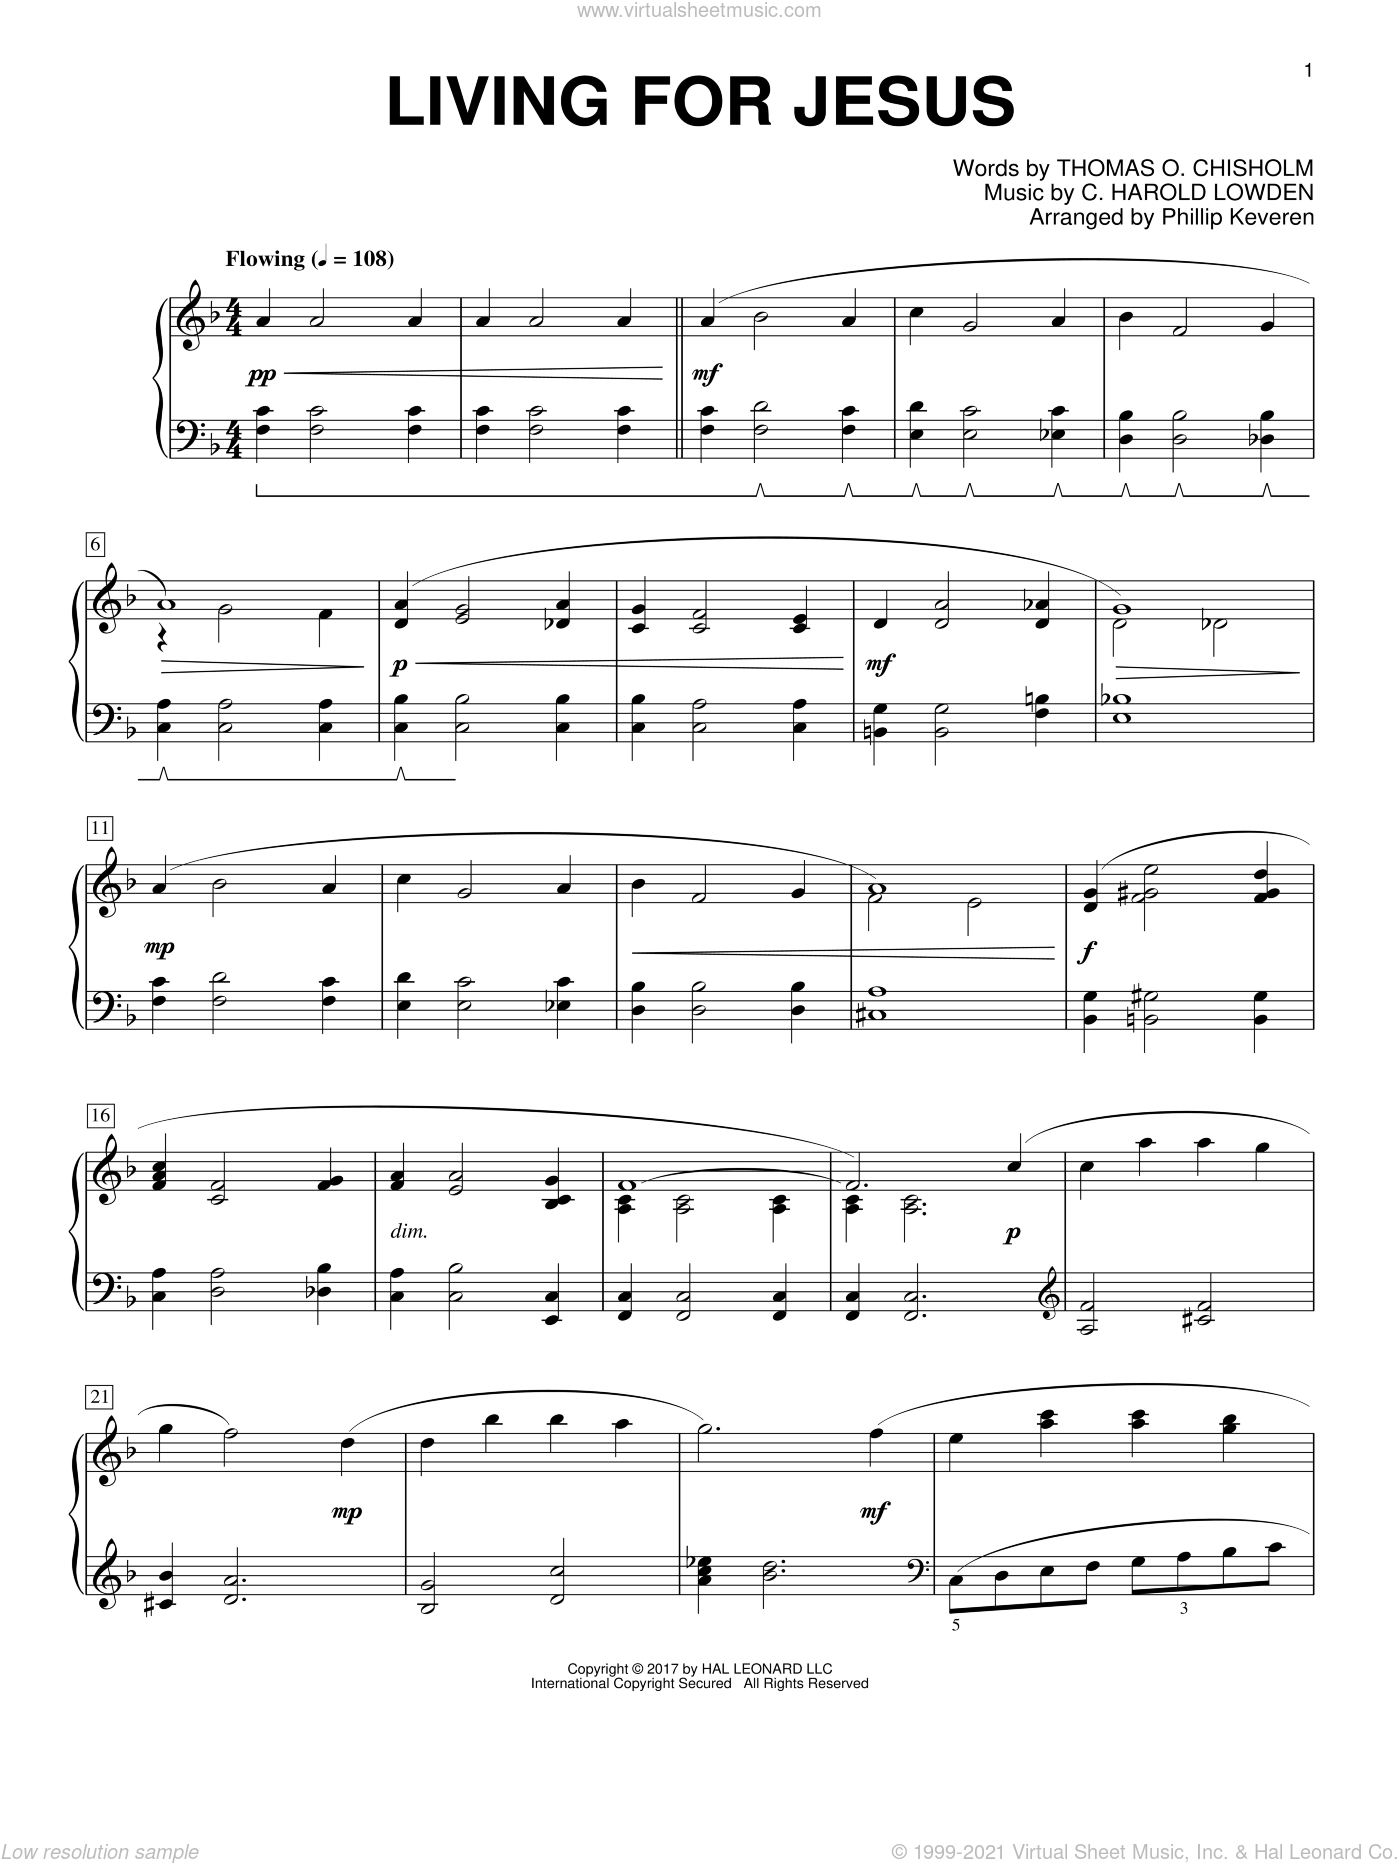 Living For Jesus sheet music for piano solo by Thomas O. Chisholm, Phillip Keveren and C. Harold Lowden, intermediate skill level